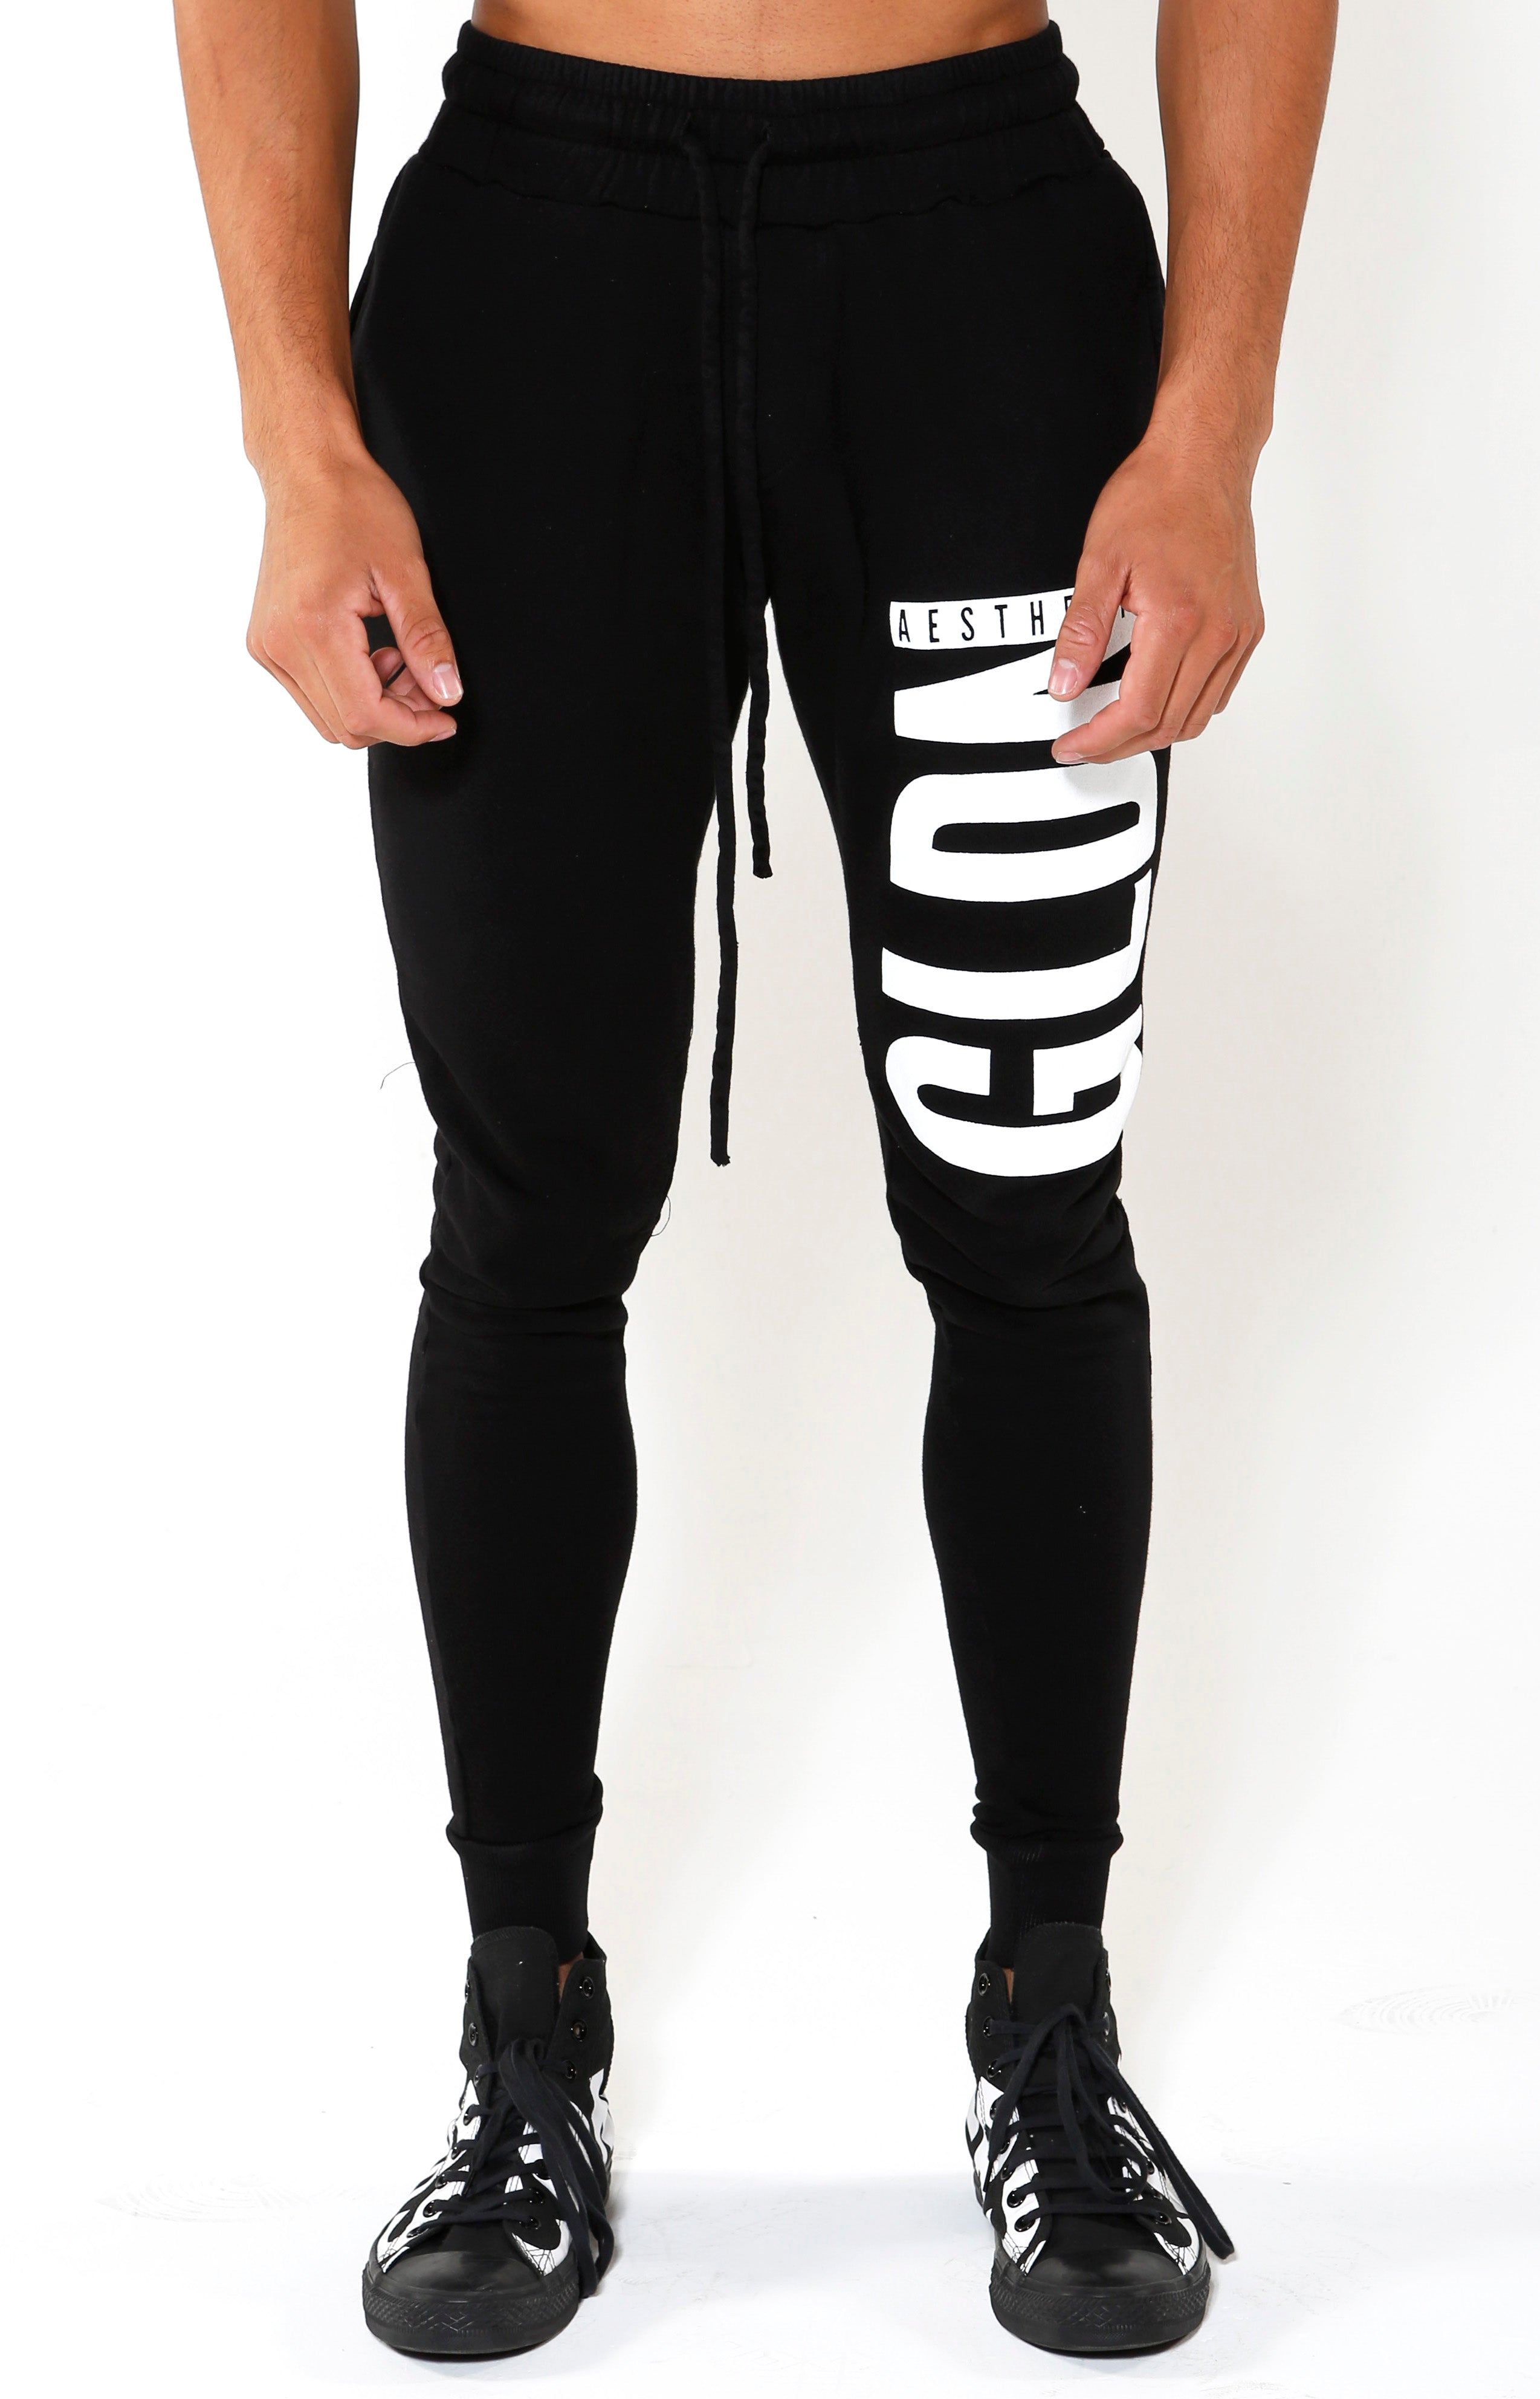 Tapered GA Joggers - Black/White - Golden Aesthetics